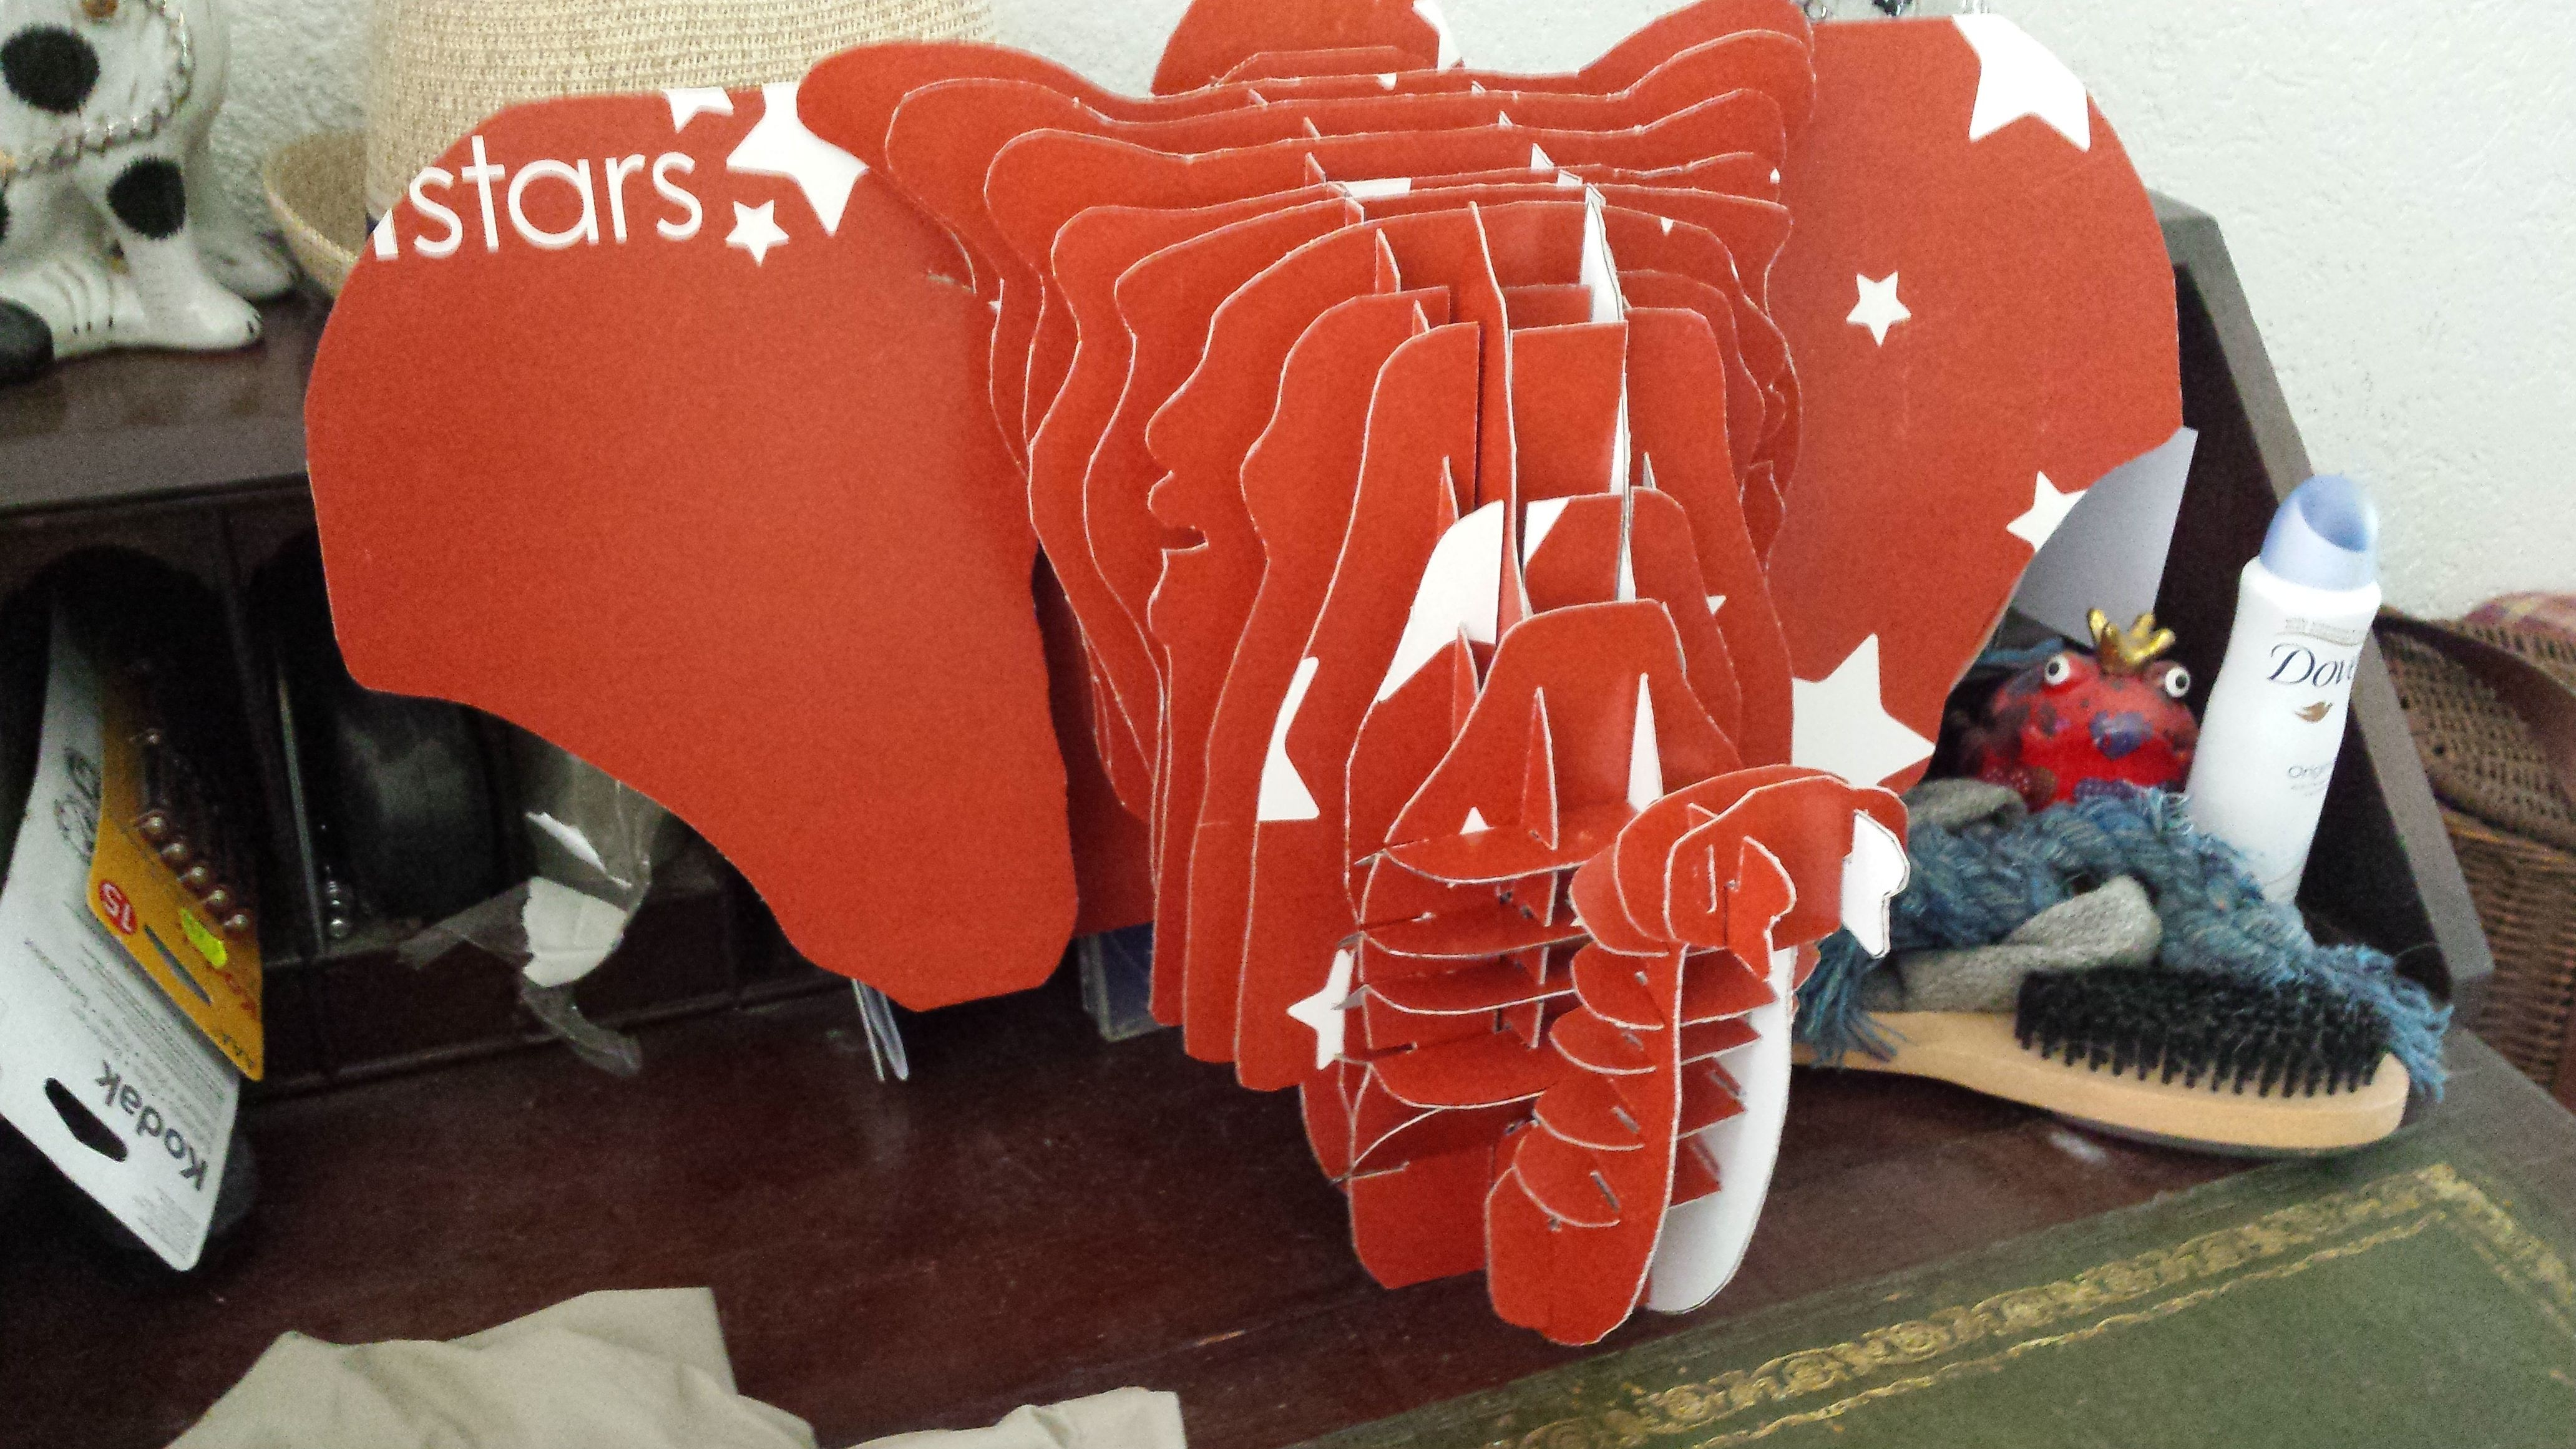 my attempts at being creative with 3D cardboard - Elephant